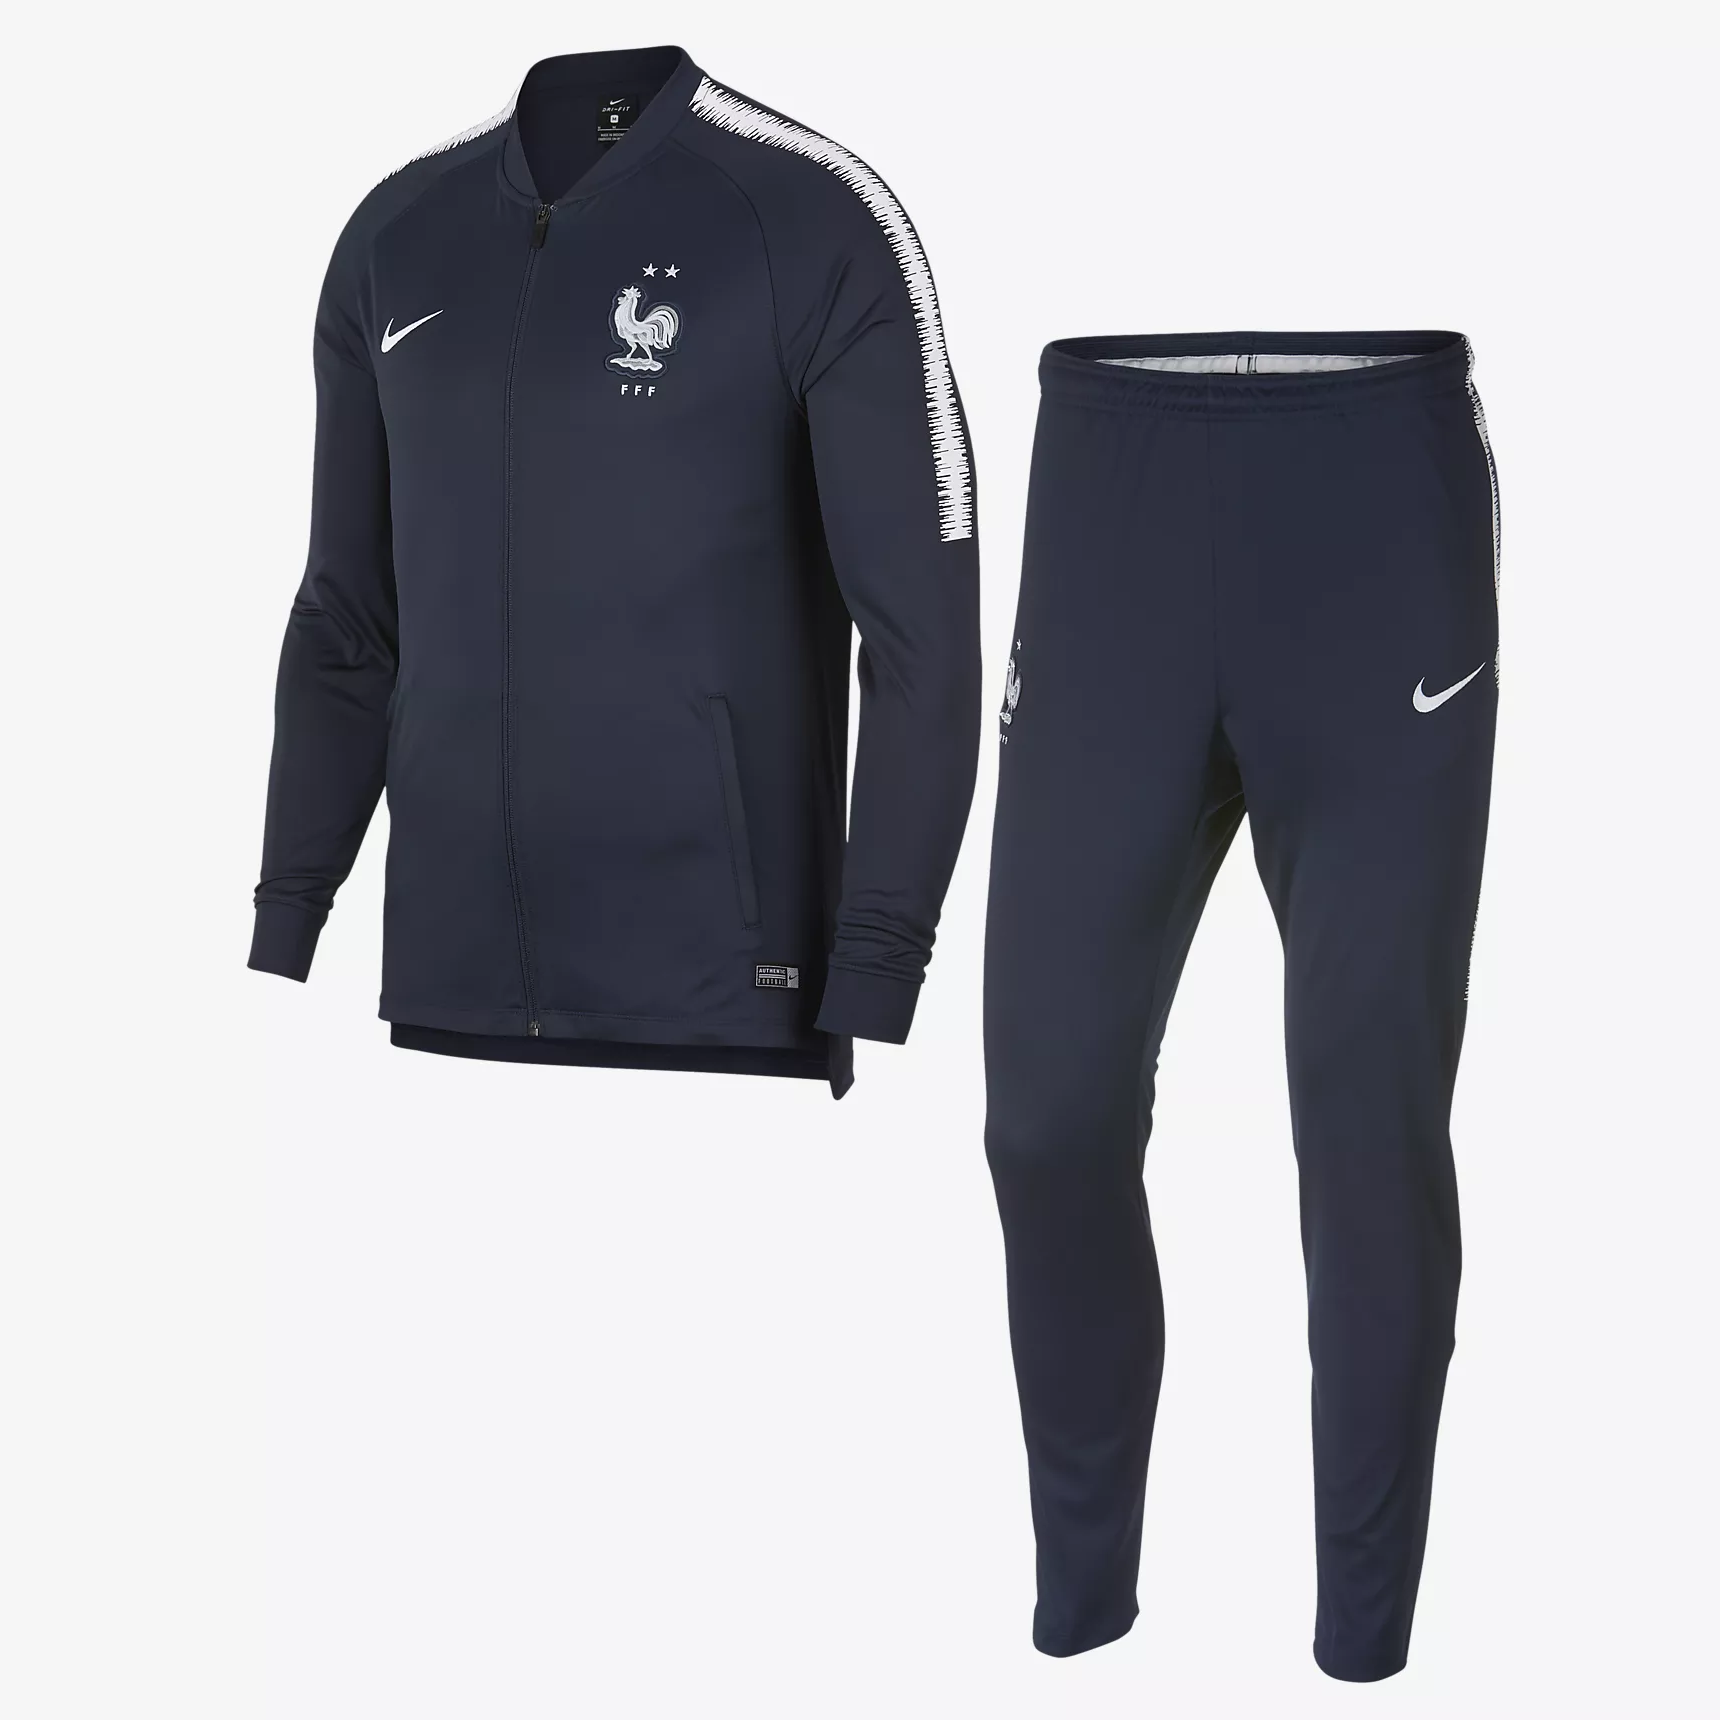 Survetement FFF Nike Junior (2 étoiles) 2018/2019 France Foot Online freeshipping - Foot Online